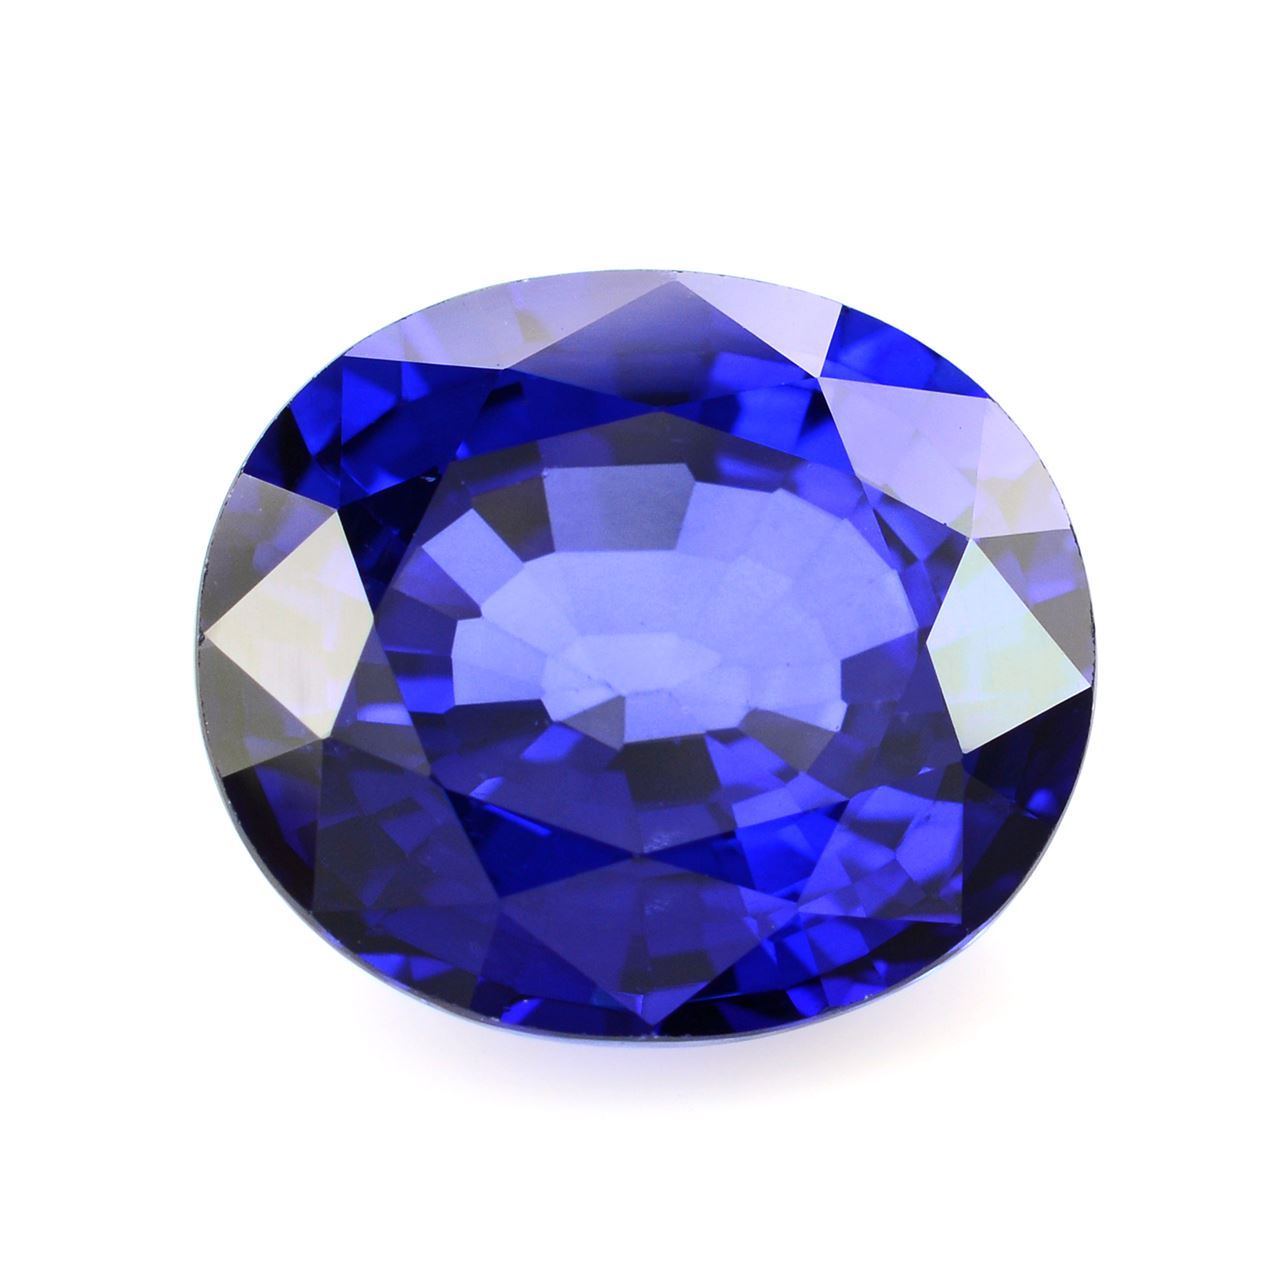 sapphire kg s largest posts weighing kilograms forum artificial at world the